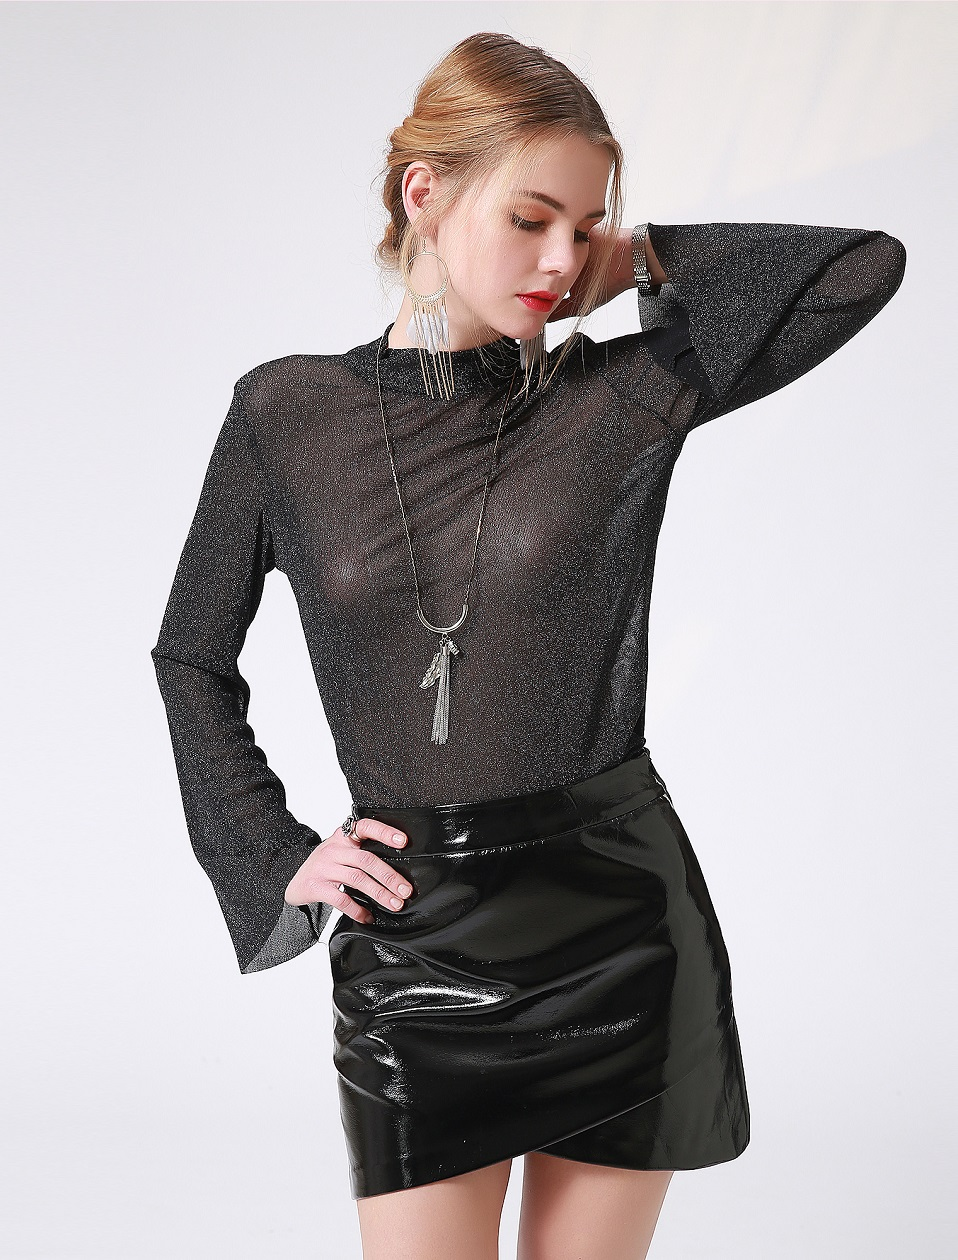 Autumn Winter Women Sexy Mini Skirt Black faux Patent Leather Female Short Pencil Skirt Zipper Fashion Streetwear Skirts Talever 4